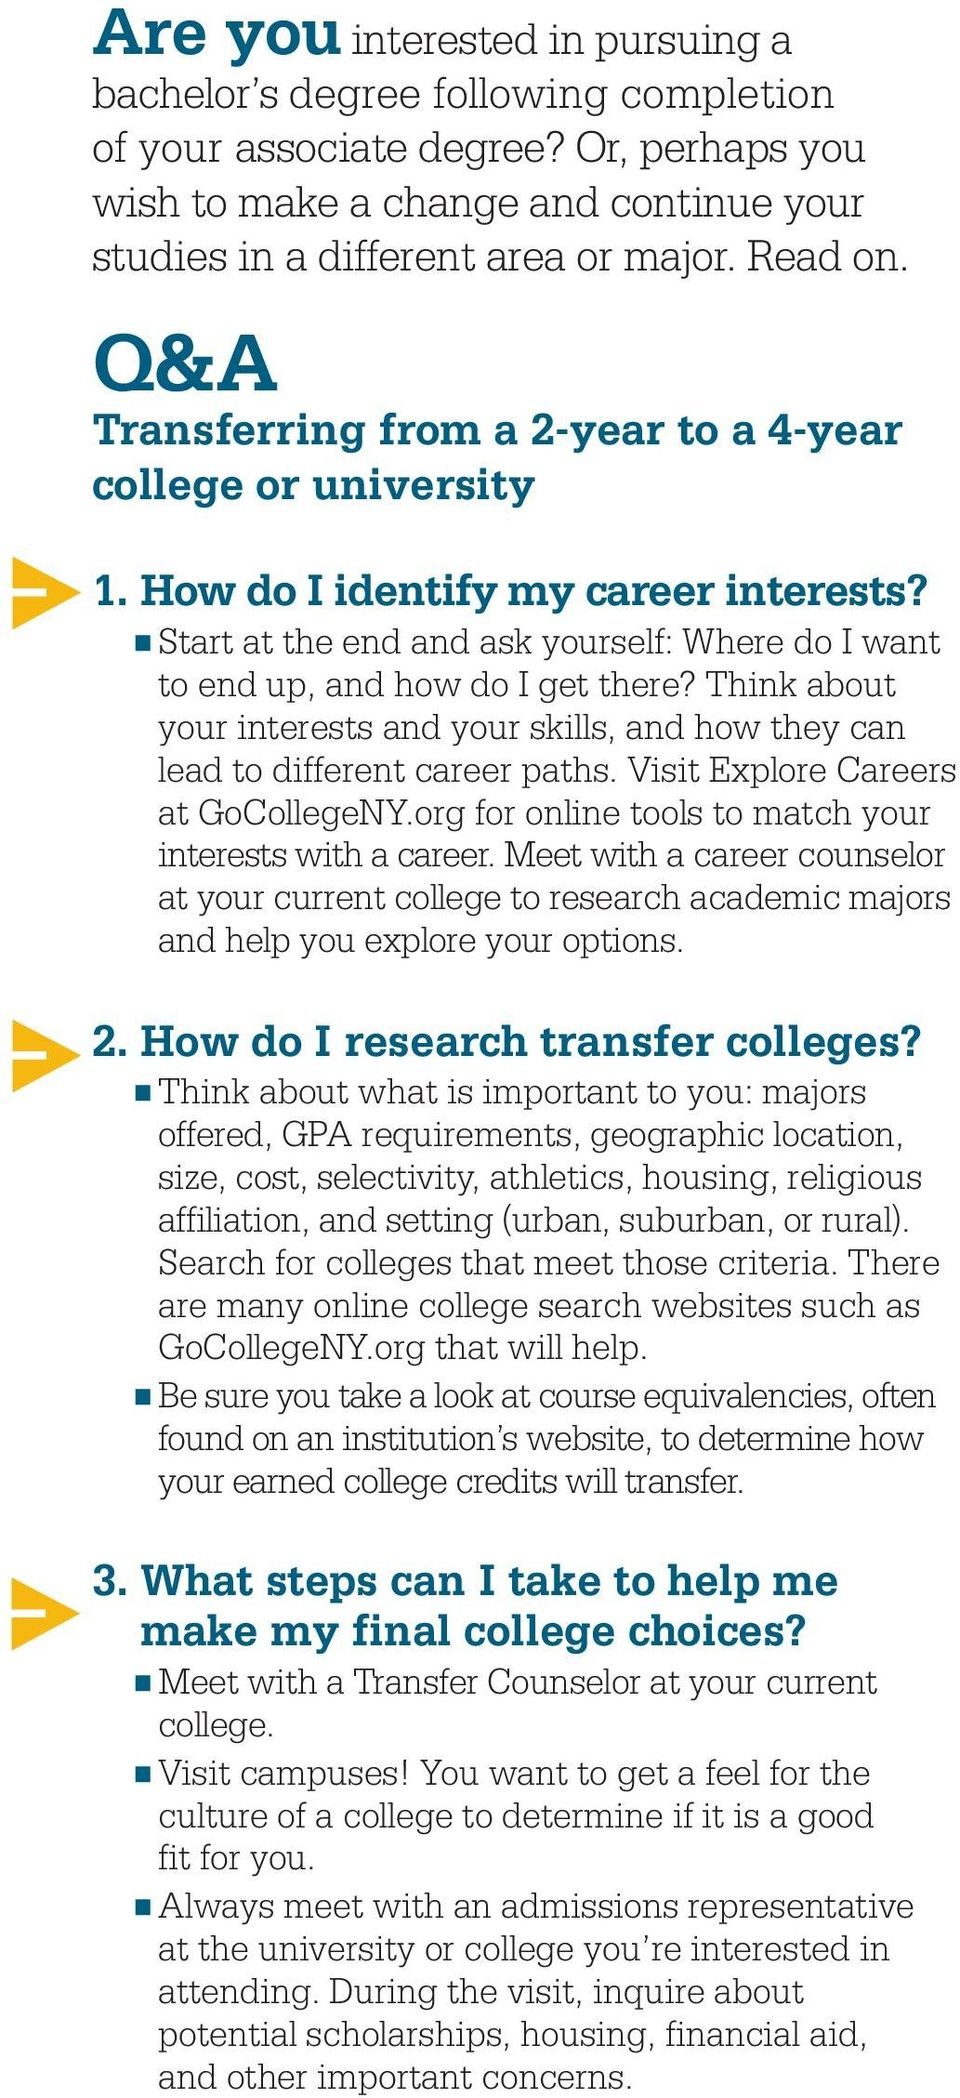 Think about your interests and your skills, and how they can lead to different career paths. Visit Explore Careers at GoCollegeNY.org for online tools to match your interests with a career.